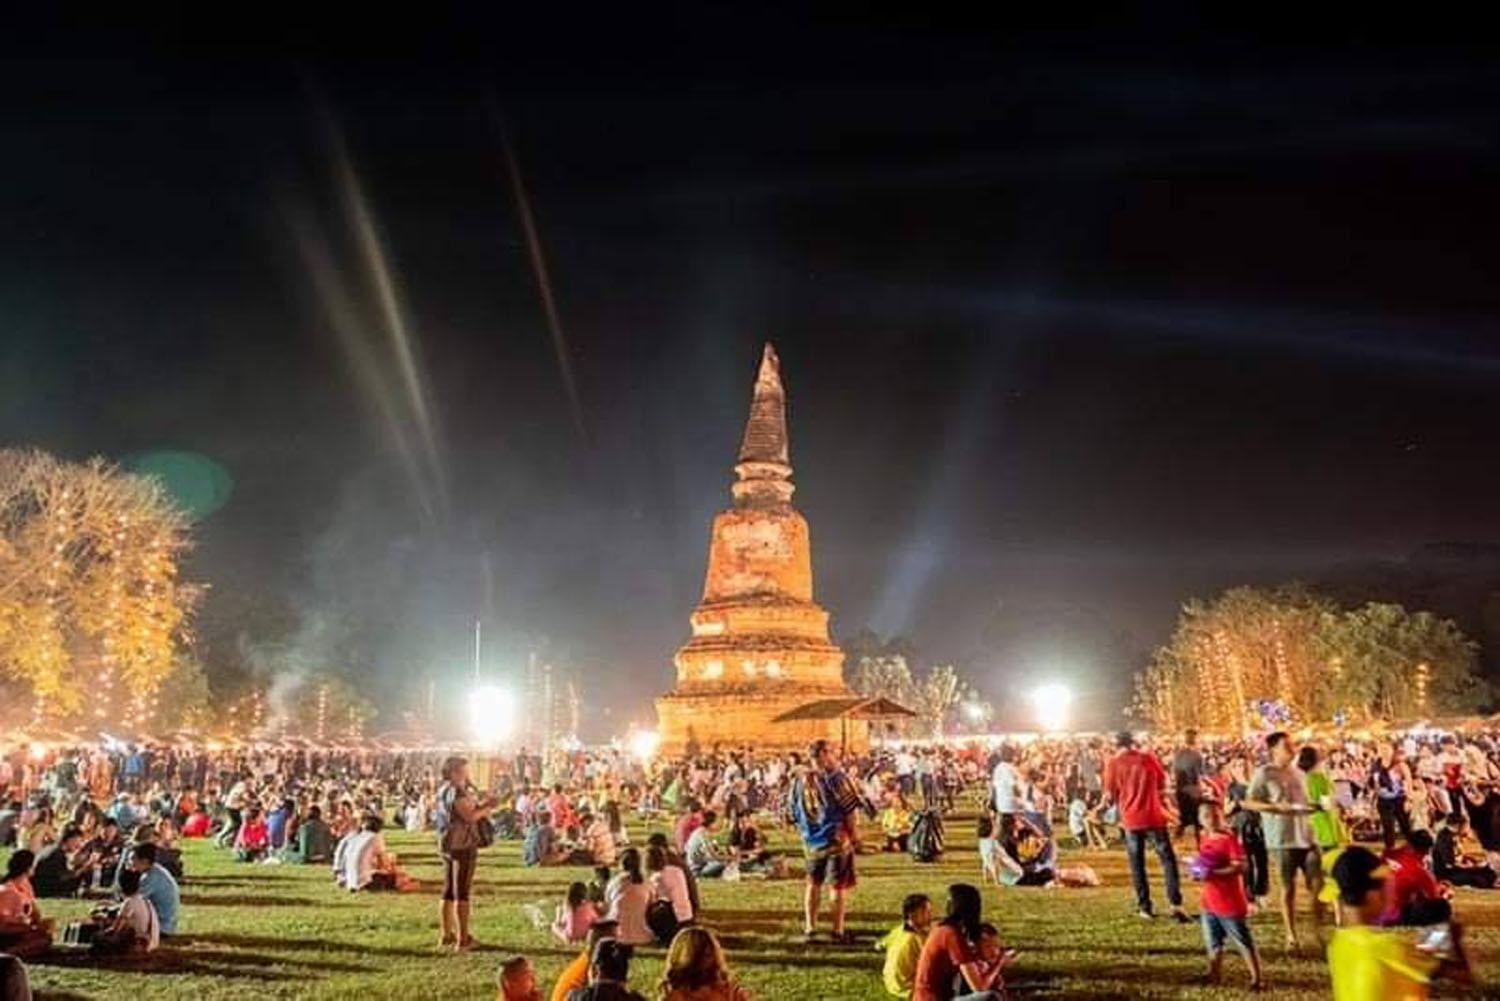 A spectacular light and sough presentation at the Ayutthaya World Heritage Fair 2018. The 2019 event, which had already been rescheduled to March 13-22, has now been postponed indefinitely due to the spread of the novel coronavirus. (Photo by Sunthorn Pongpao)